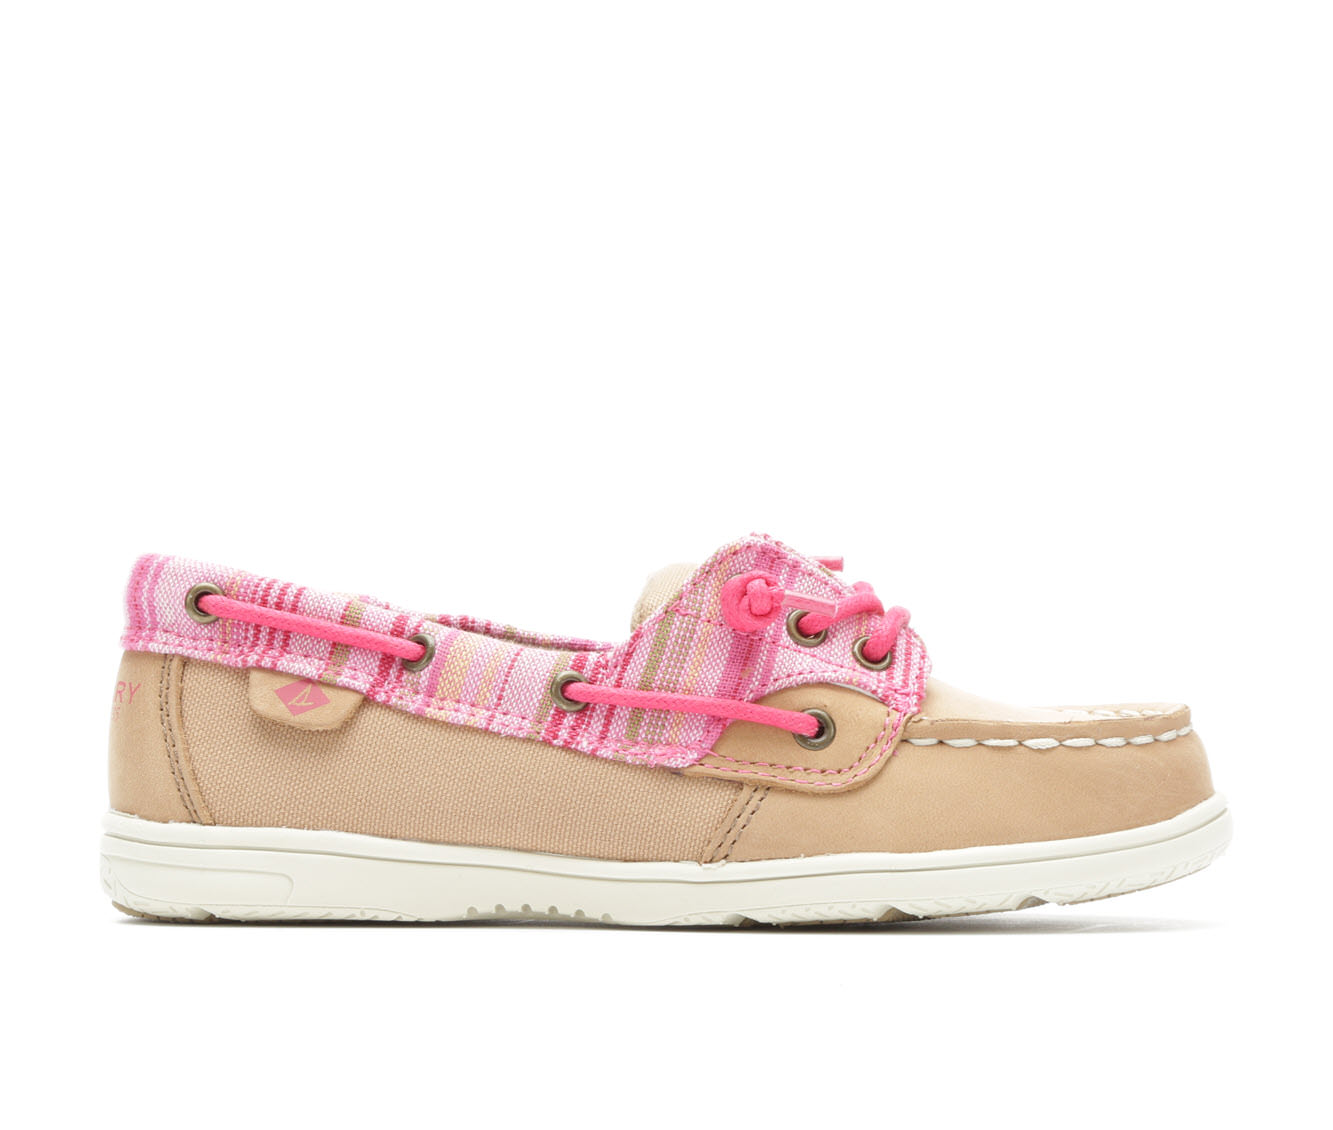 Girls' Sperry Shoresider Boat Shoes (Beige)